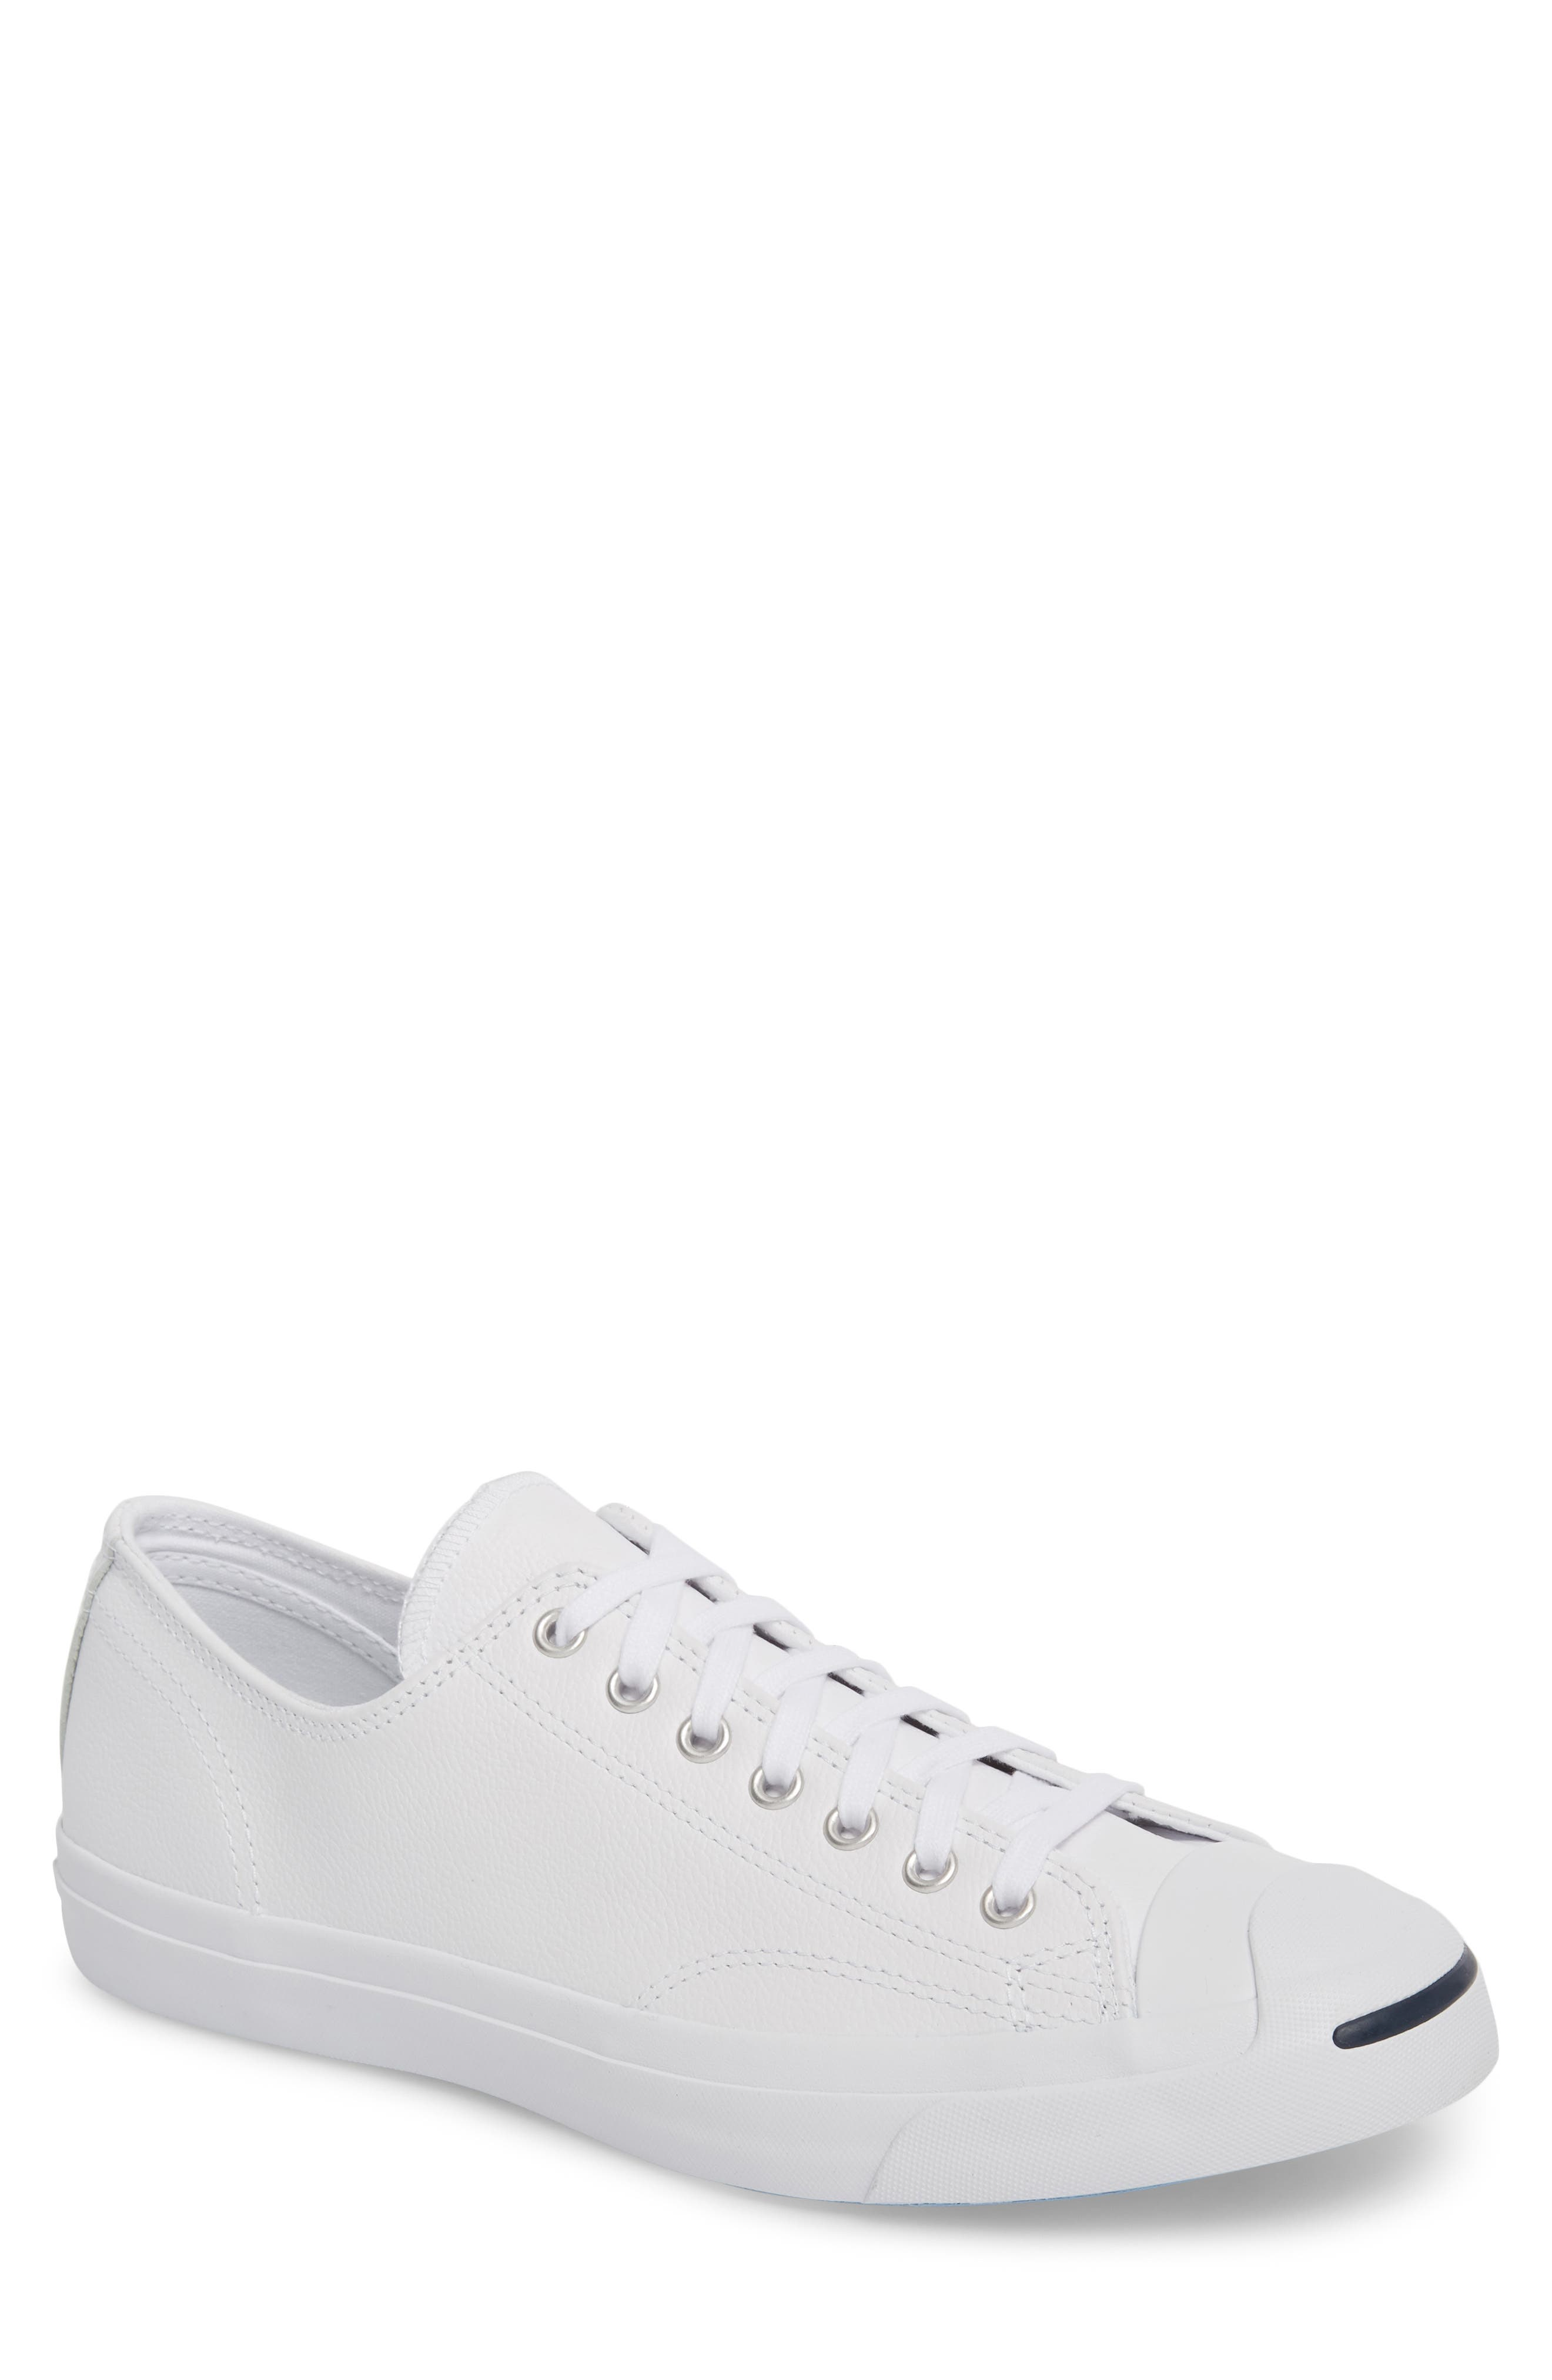 jack purcell converse men leather shoes